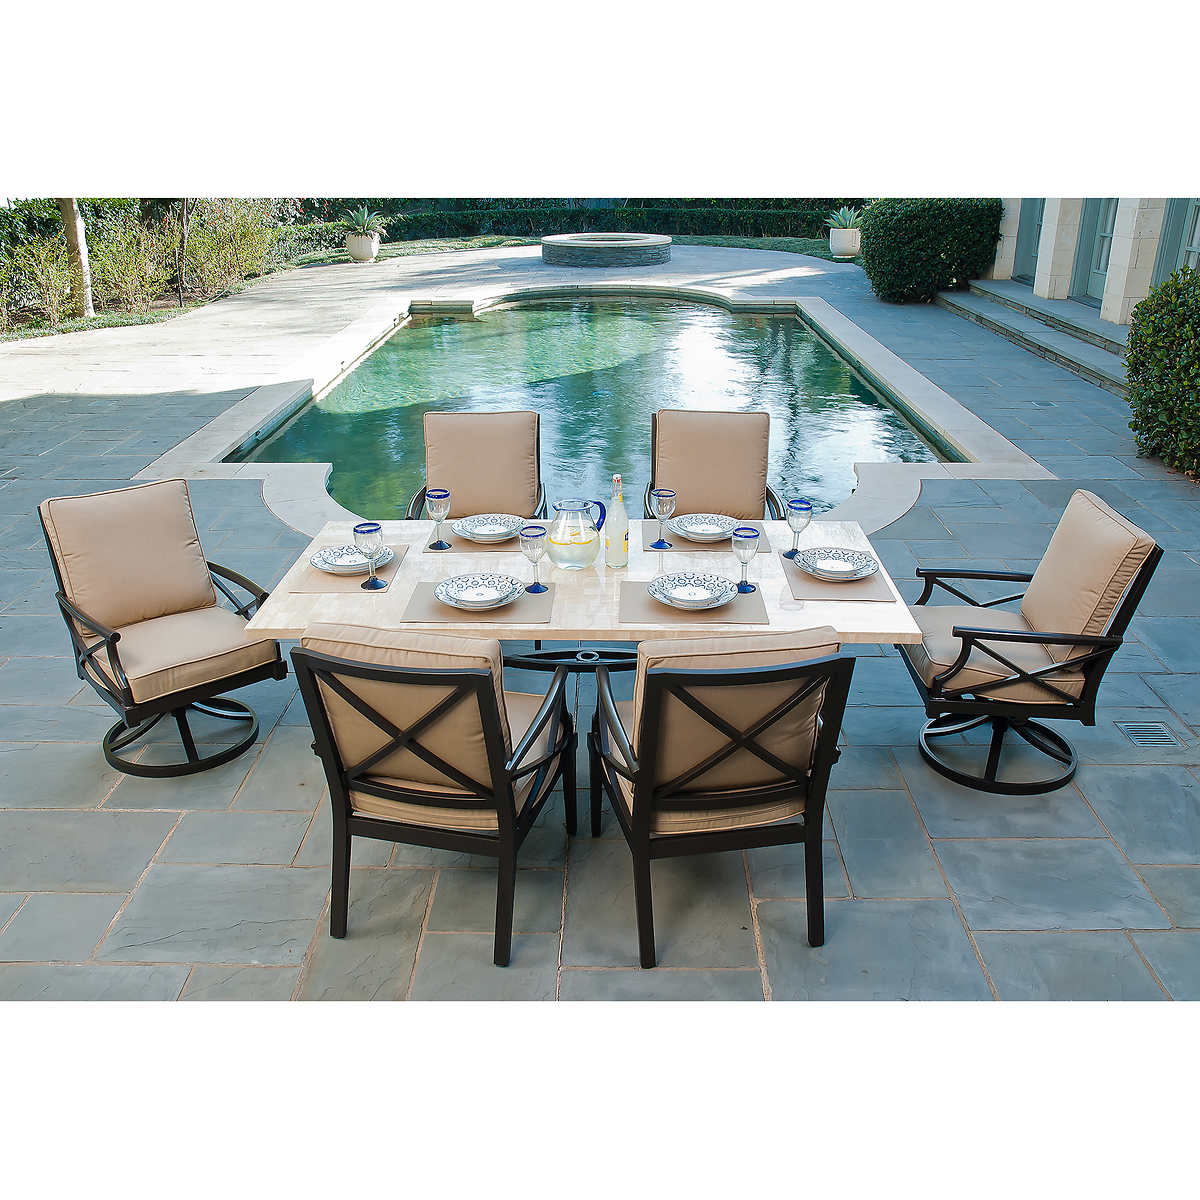 Outdoor Patio Dining Furniture travers 7-piece patio dining set